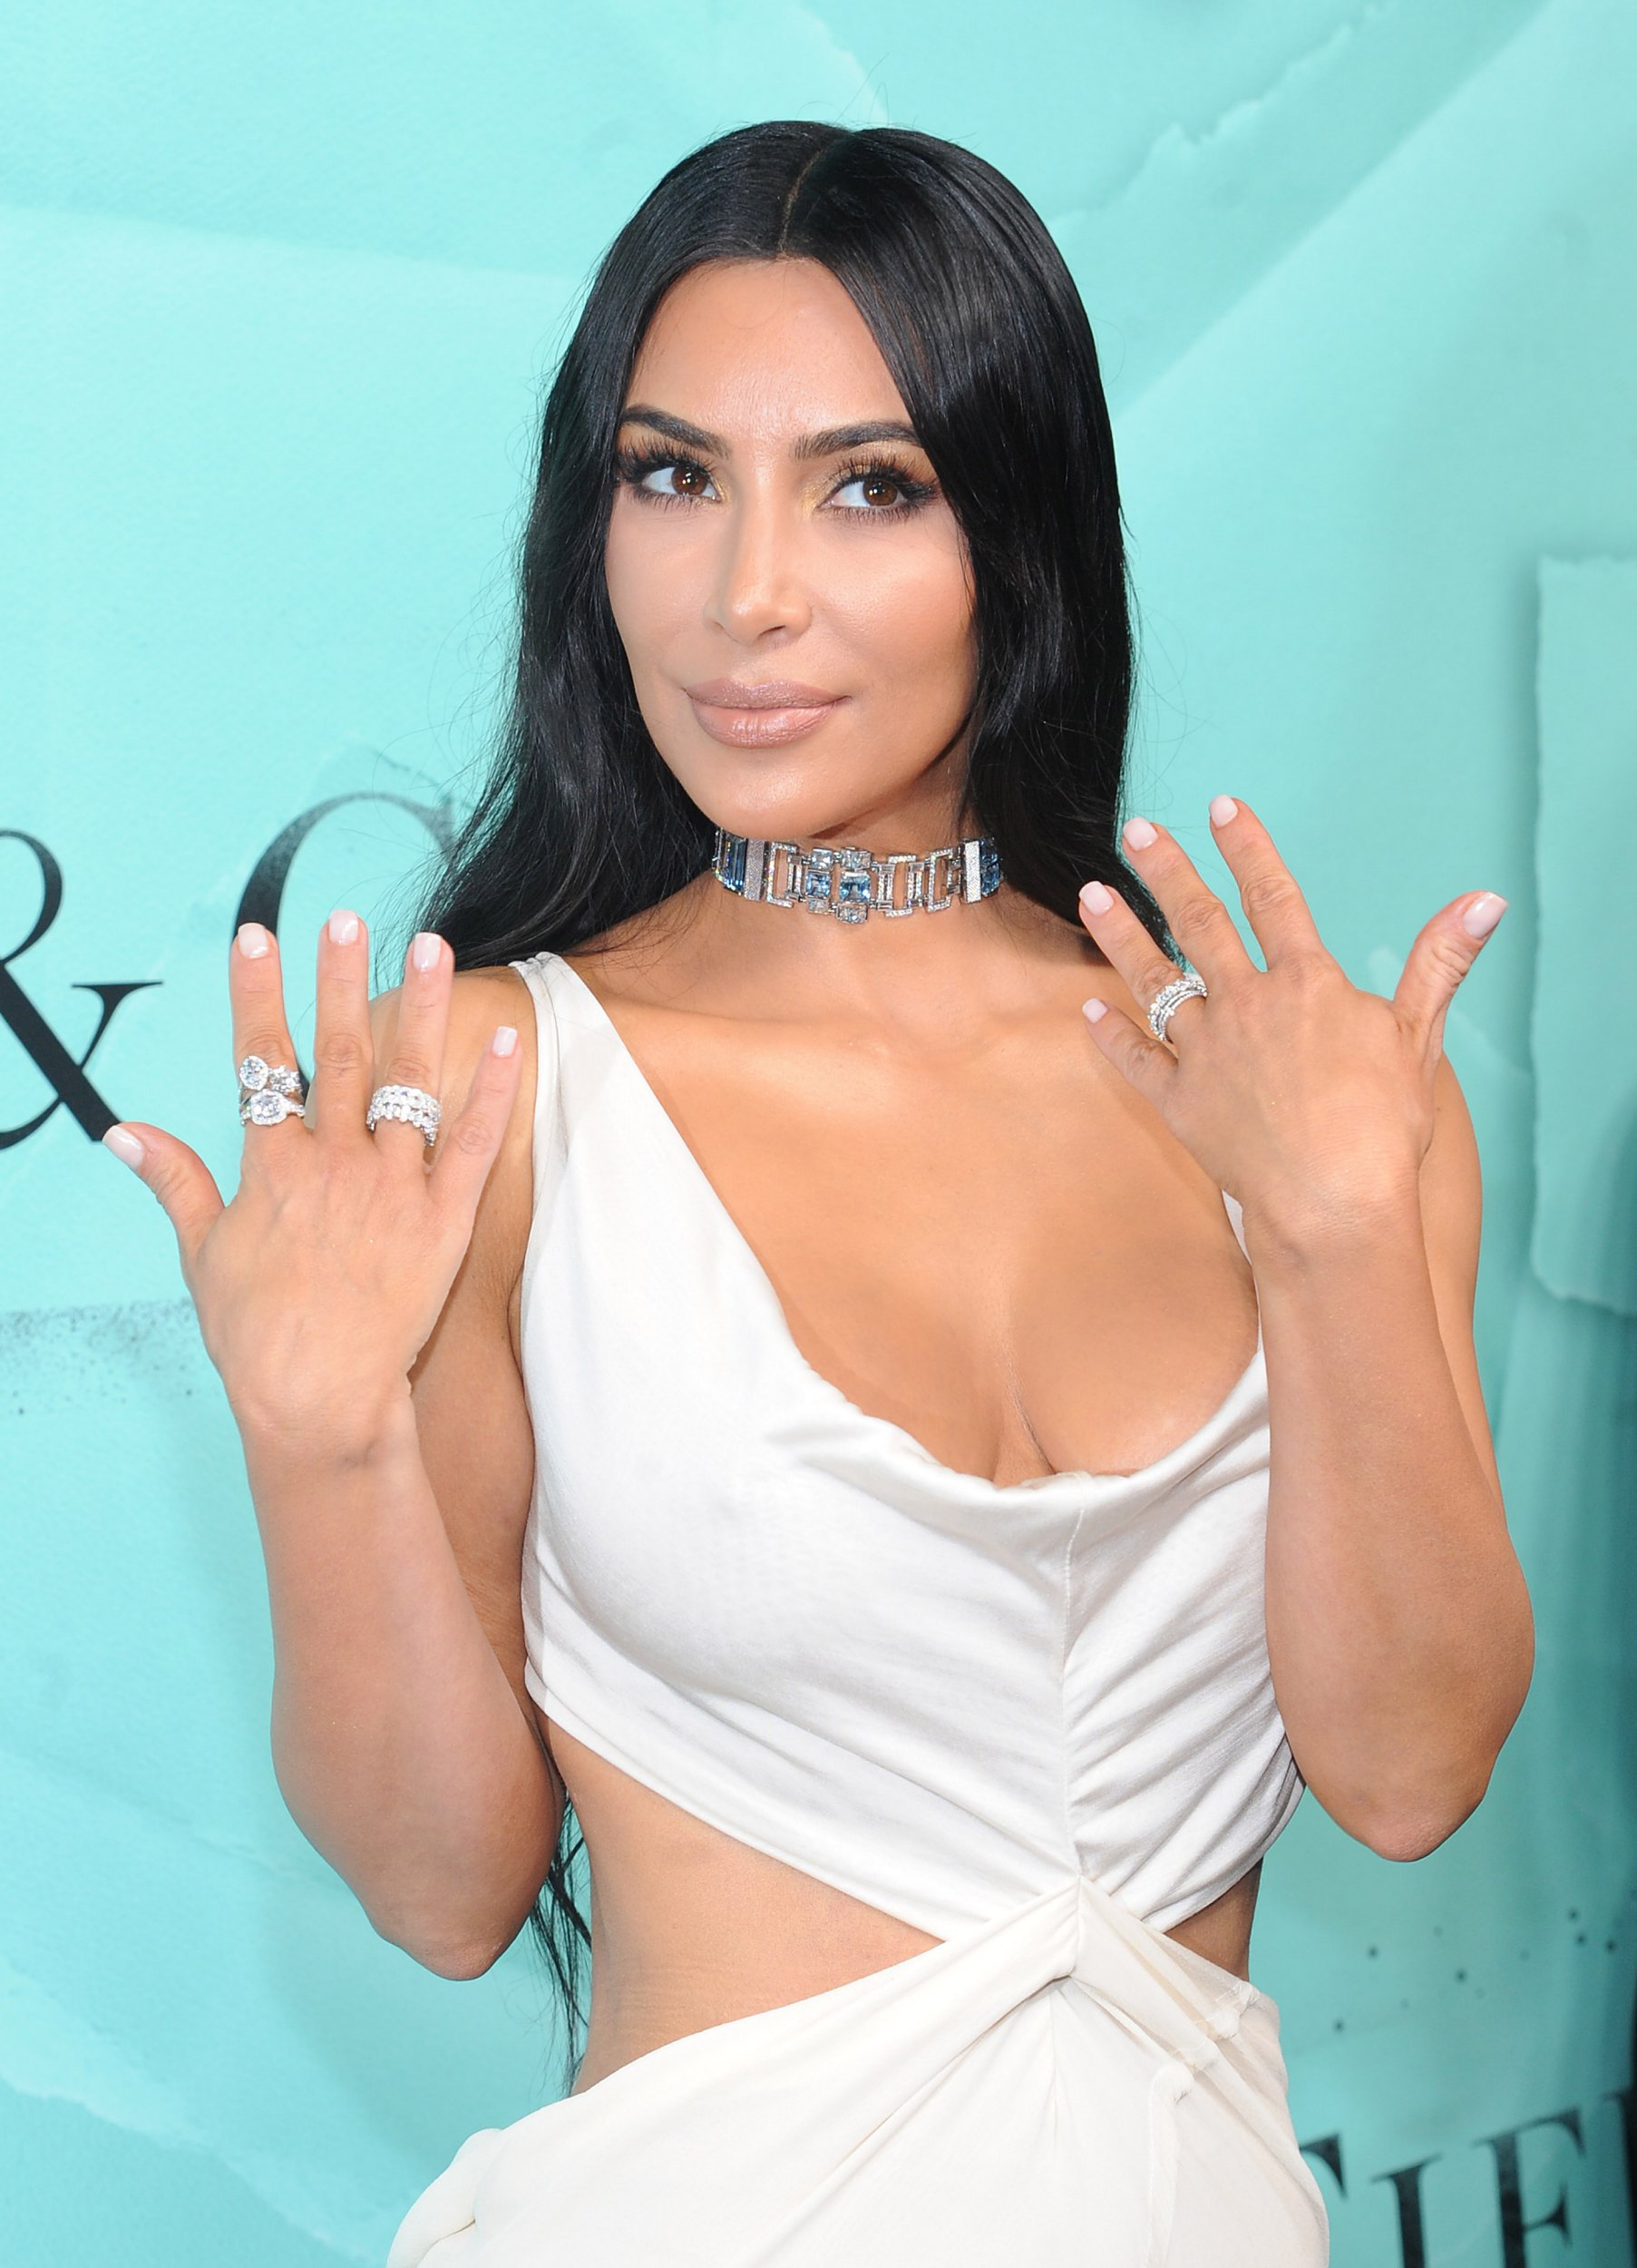 Kim Kardashian West, Priyanka Chopra, Zoe Kravitz, Rachel Brosnahan, Mary J Blige and more attend the Tiffany & Co. Blue Book collection, The Four Seasons Of Tiffany at Studio 525 on October 9, 2018 in New York City. Pictured: Kim Kardashian West Ref: SPL5032024 101018 NON-EXCLUSIVE Picture by: Jackie Brown / SplashNews.com Splash News and Pictures Los Angeles: 310-821-2666 New York: 212-619-2666 London: 0207 644 7656 Milan: +39 02 4399 8577 Sydney: +61 02 9240 7700 photodesk@splashnews.com World Rights,